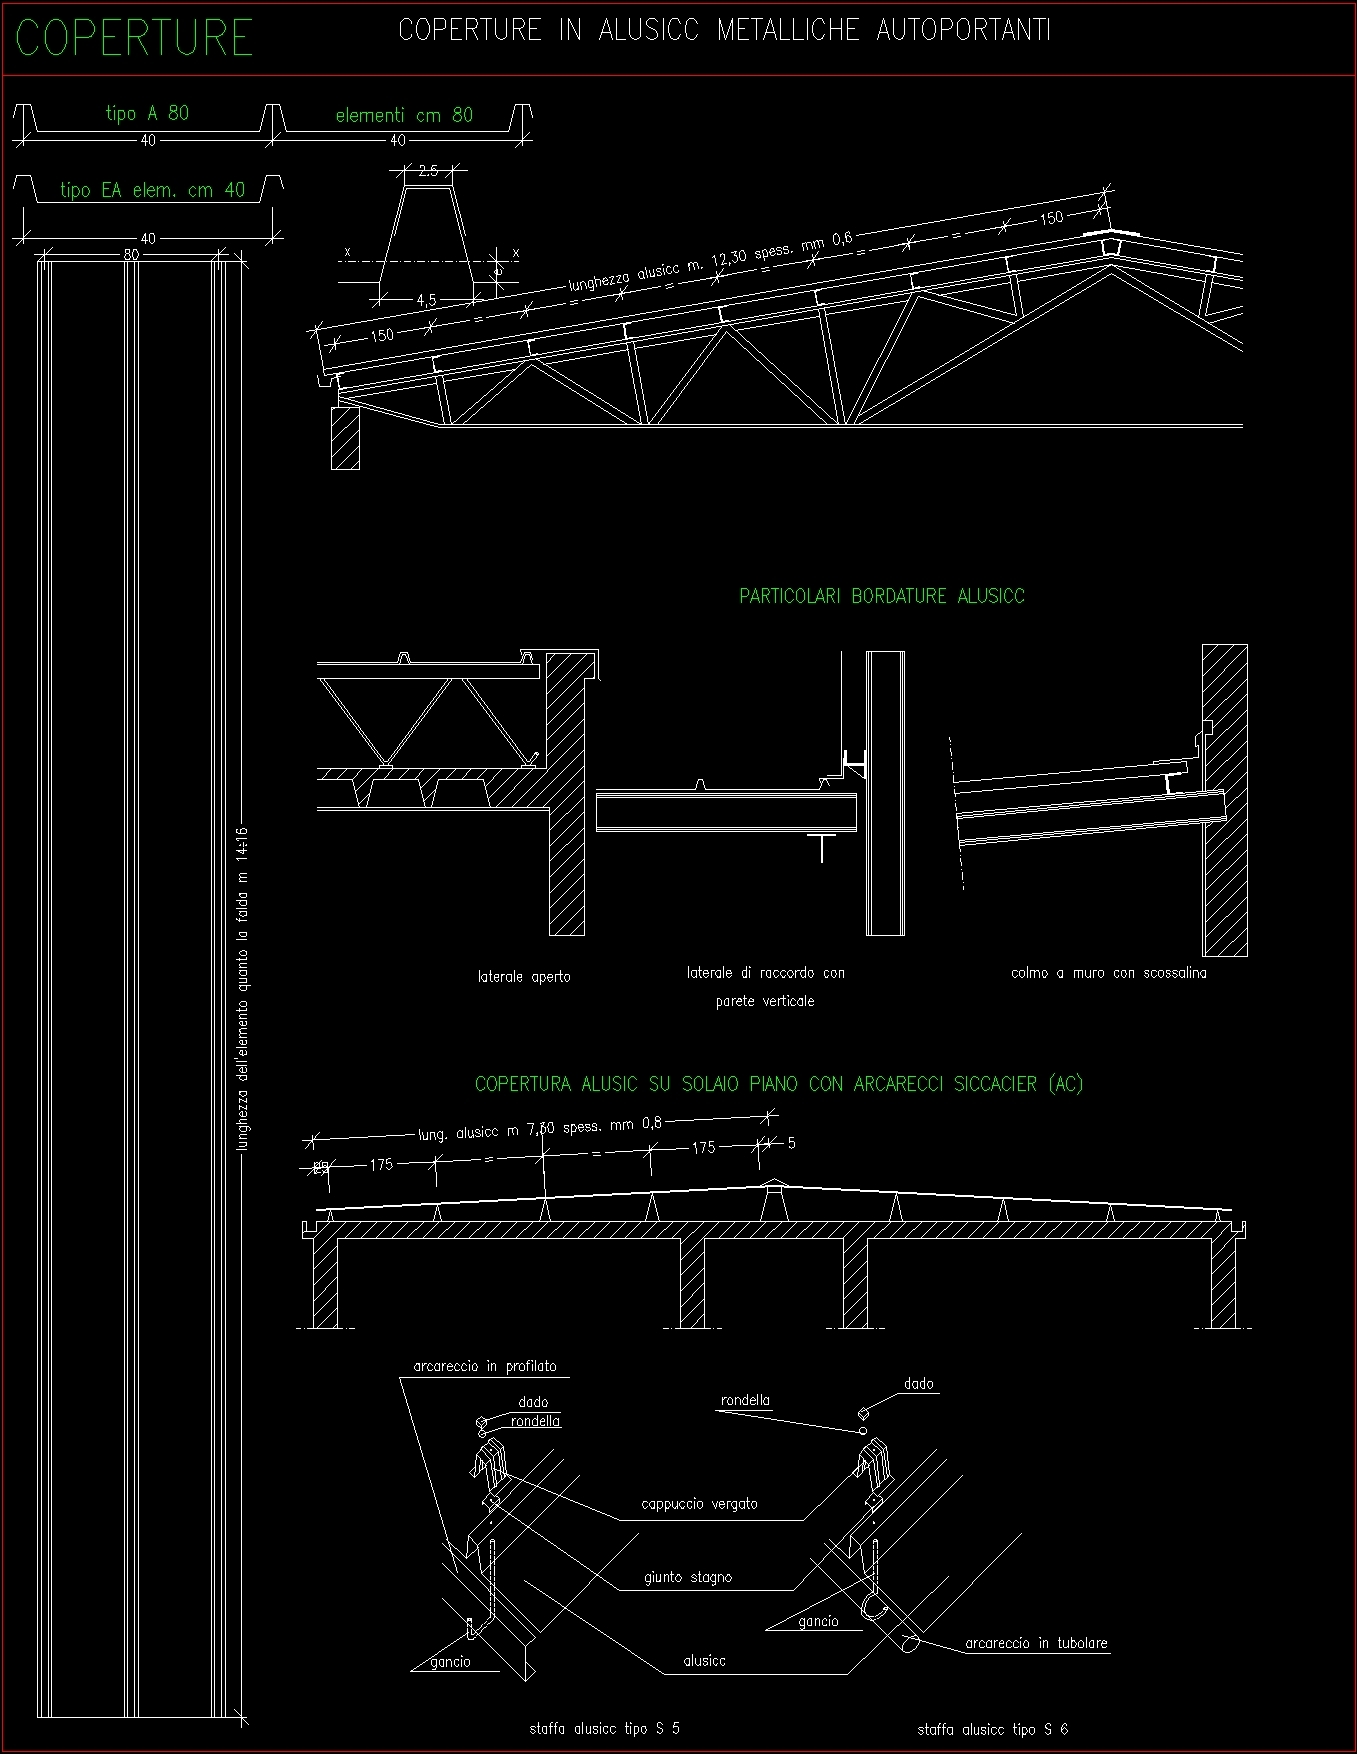 Roof and structure in aluminum plate car amble dwg detail for Strutture metalliche dwg